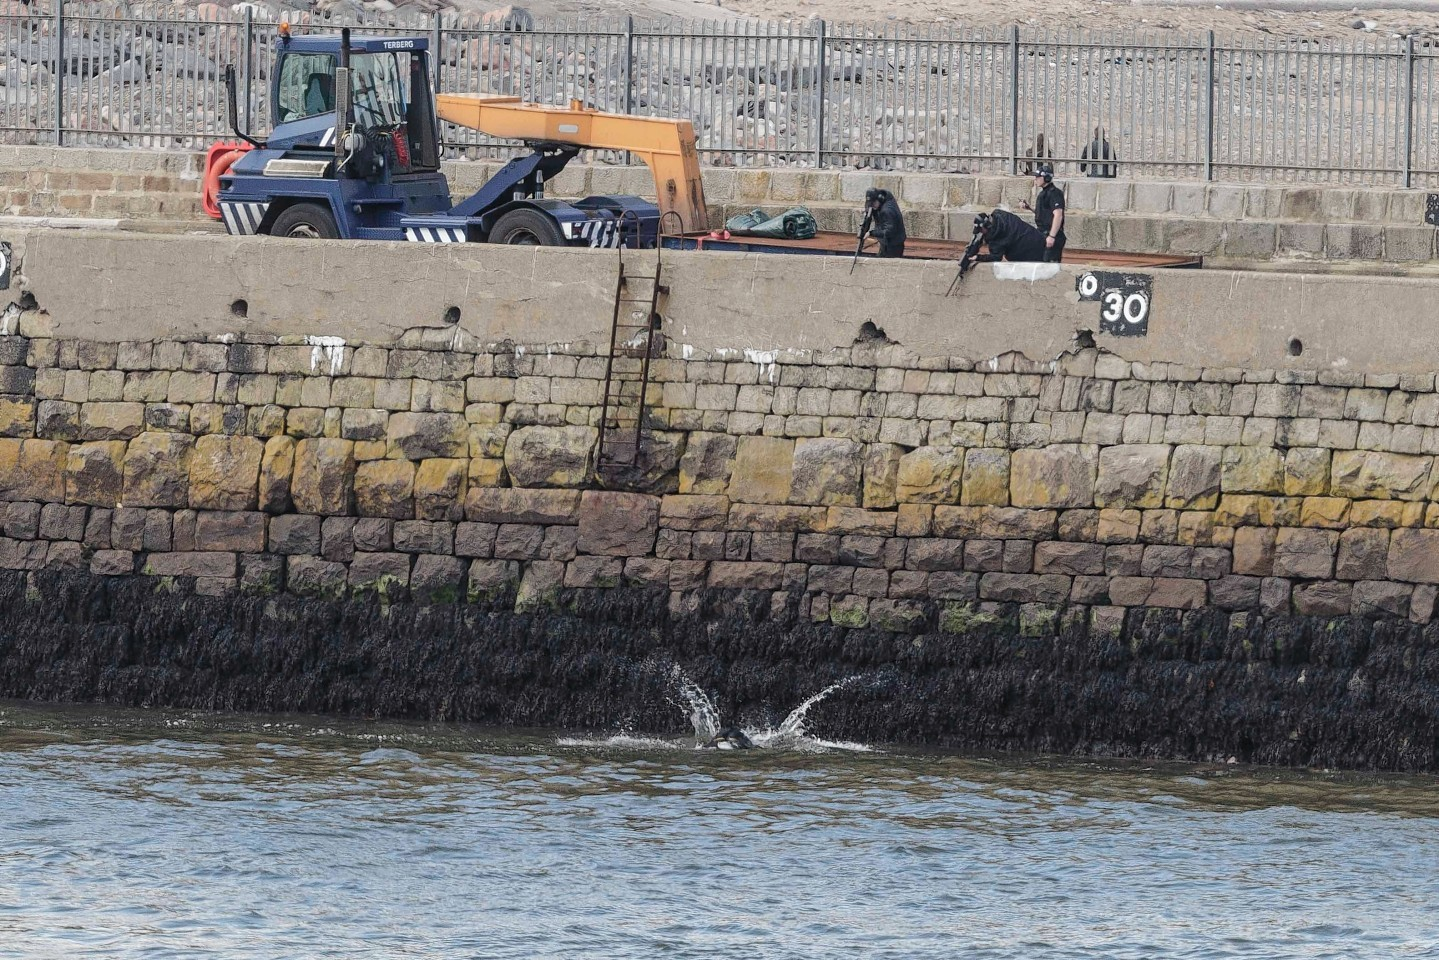 Police shot the cow at Aberdeen Harbour